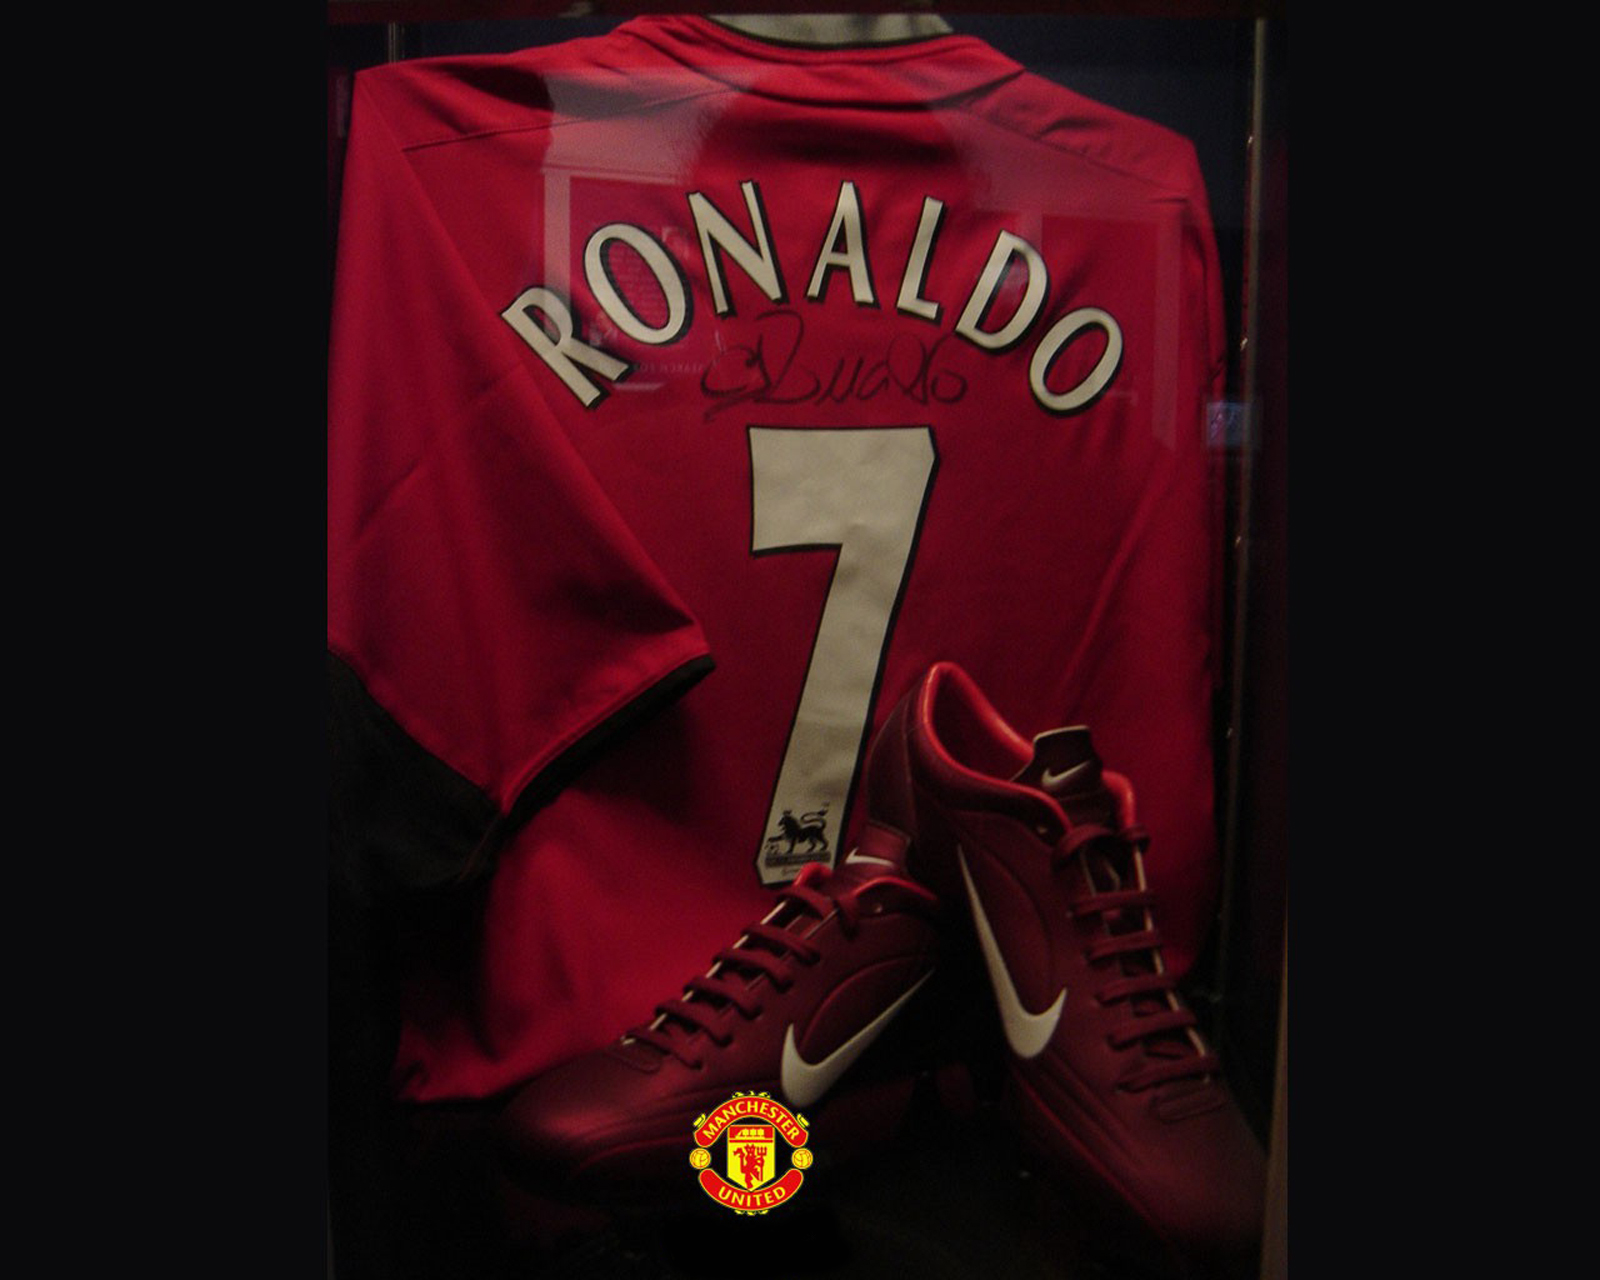 Ronaldo manchester united signed uniform and nike shoes hd wallpaper